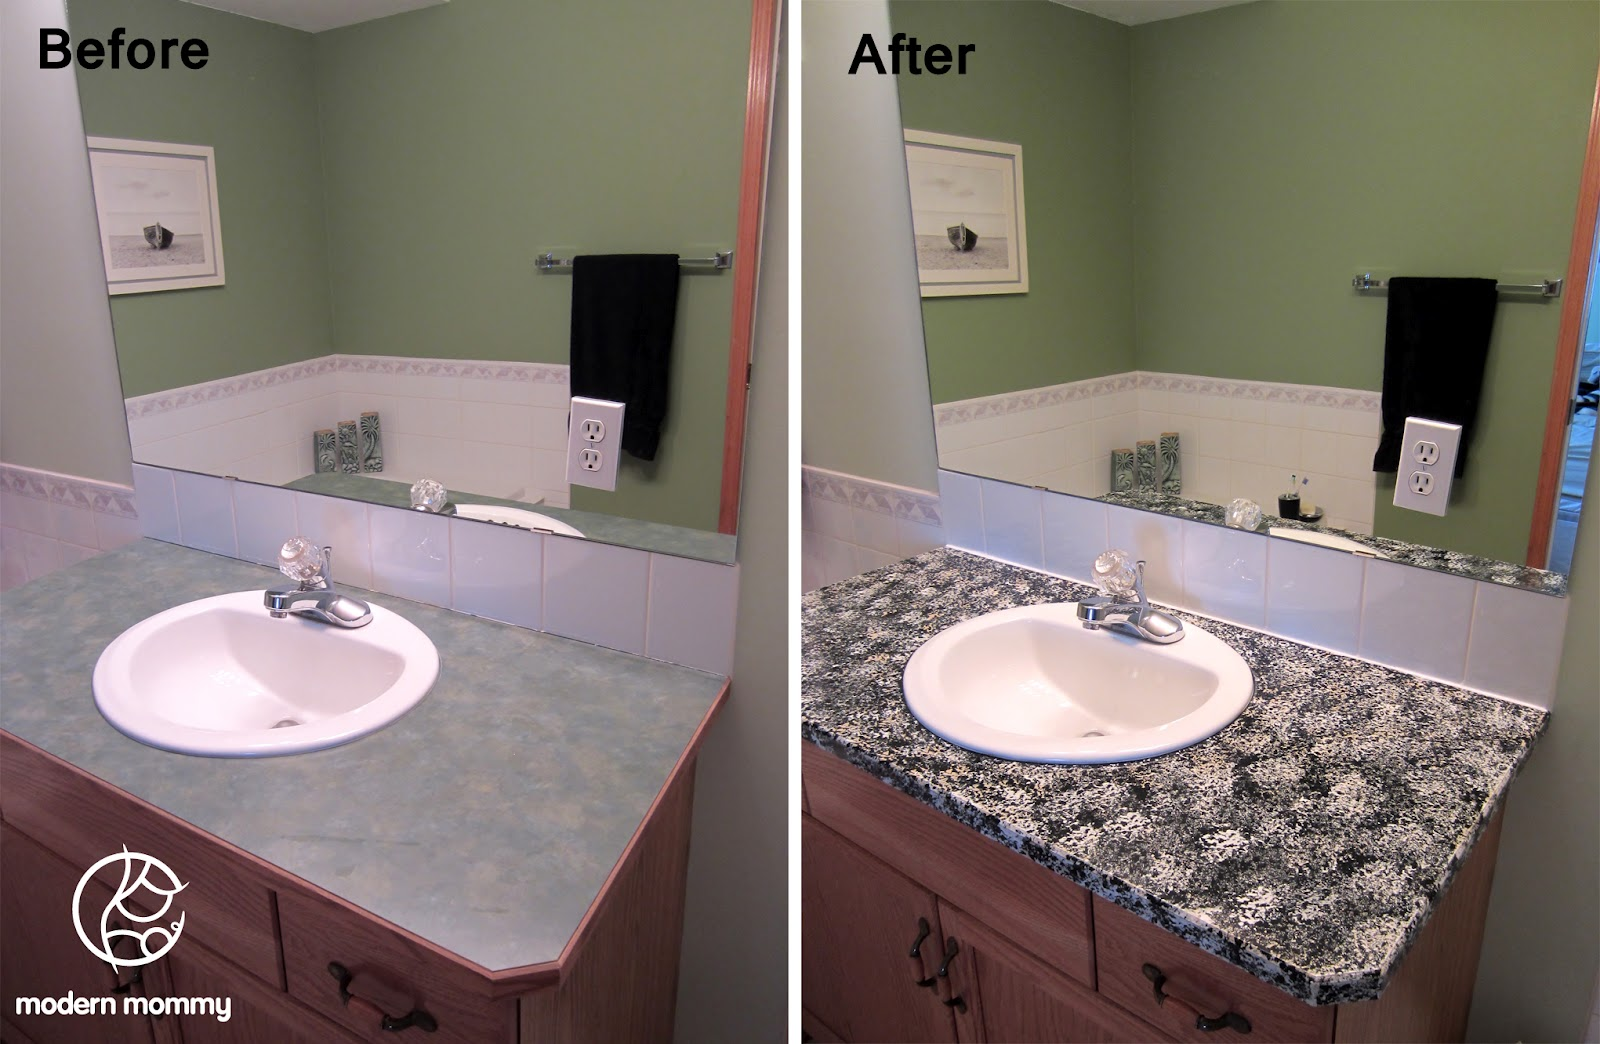 Modern Mommy: Time for a Home DIY Project: Granite Countertop Paint